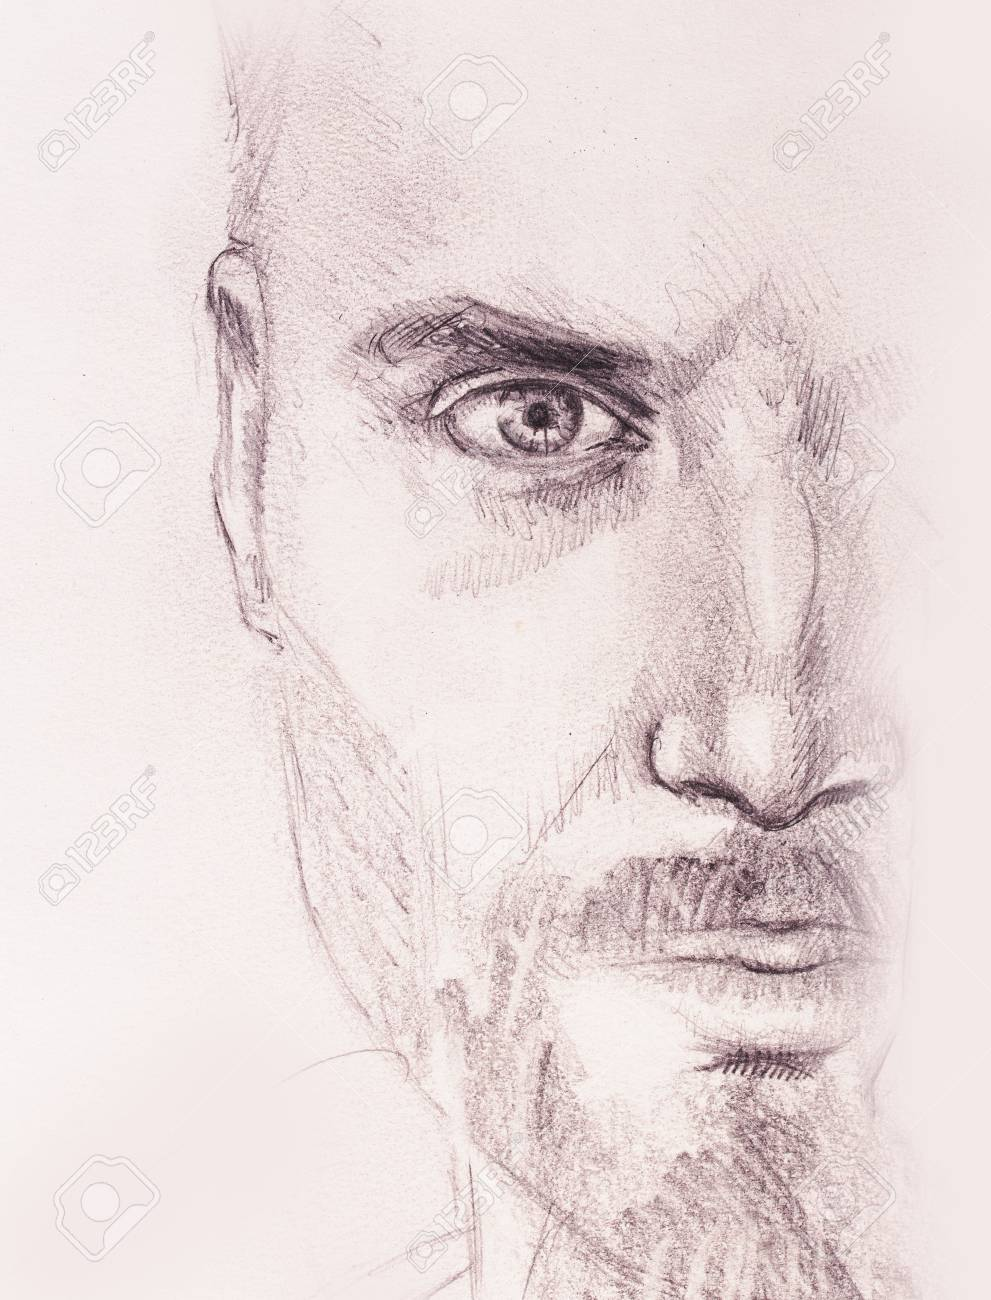 Mystic man pencil drawing on old paper stock photo 76055758